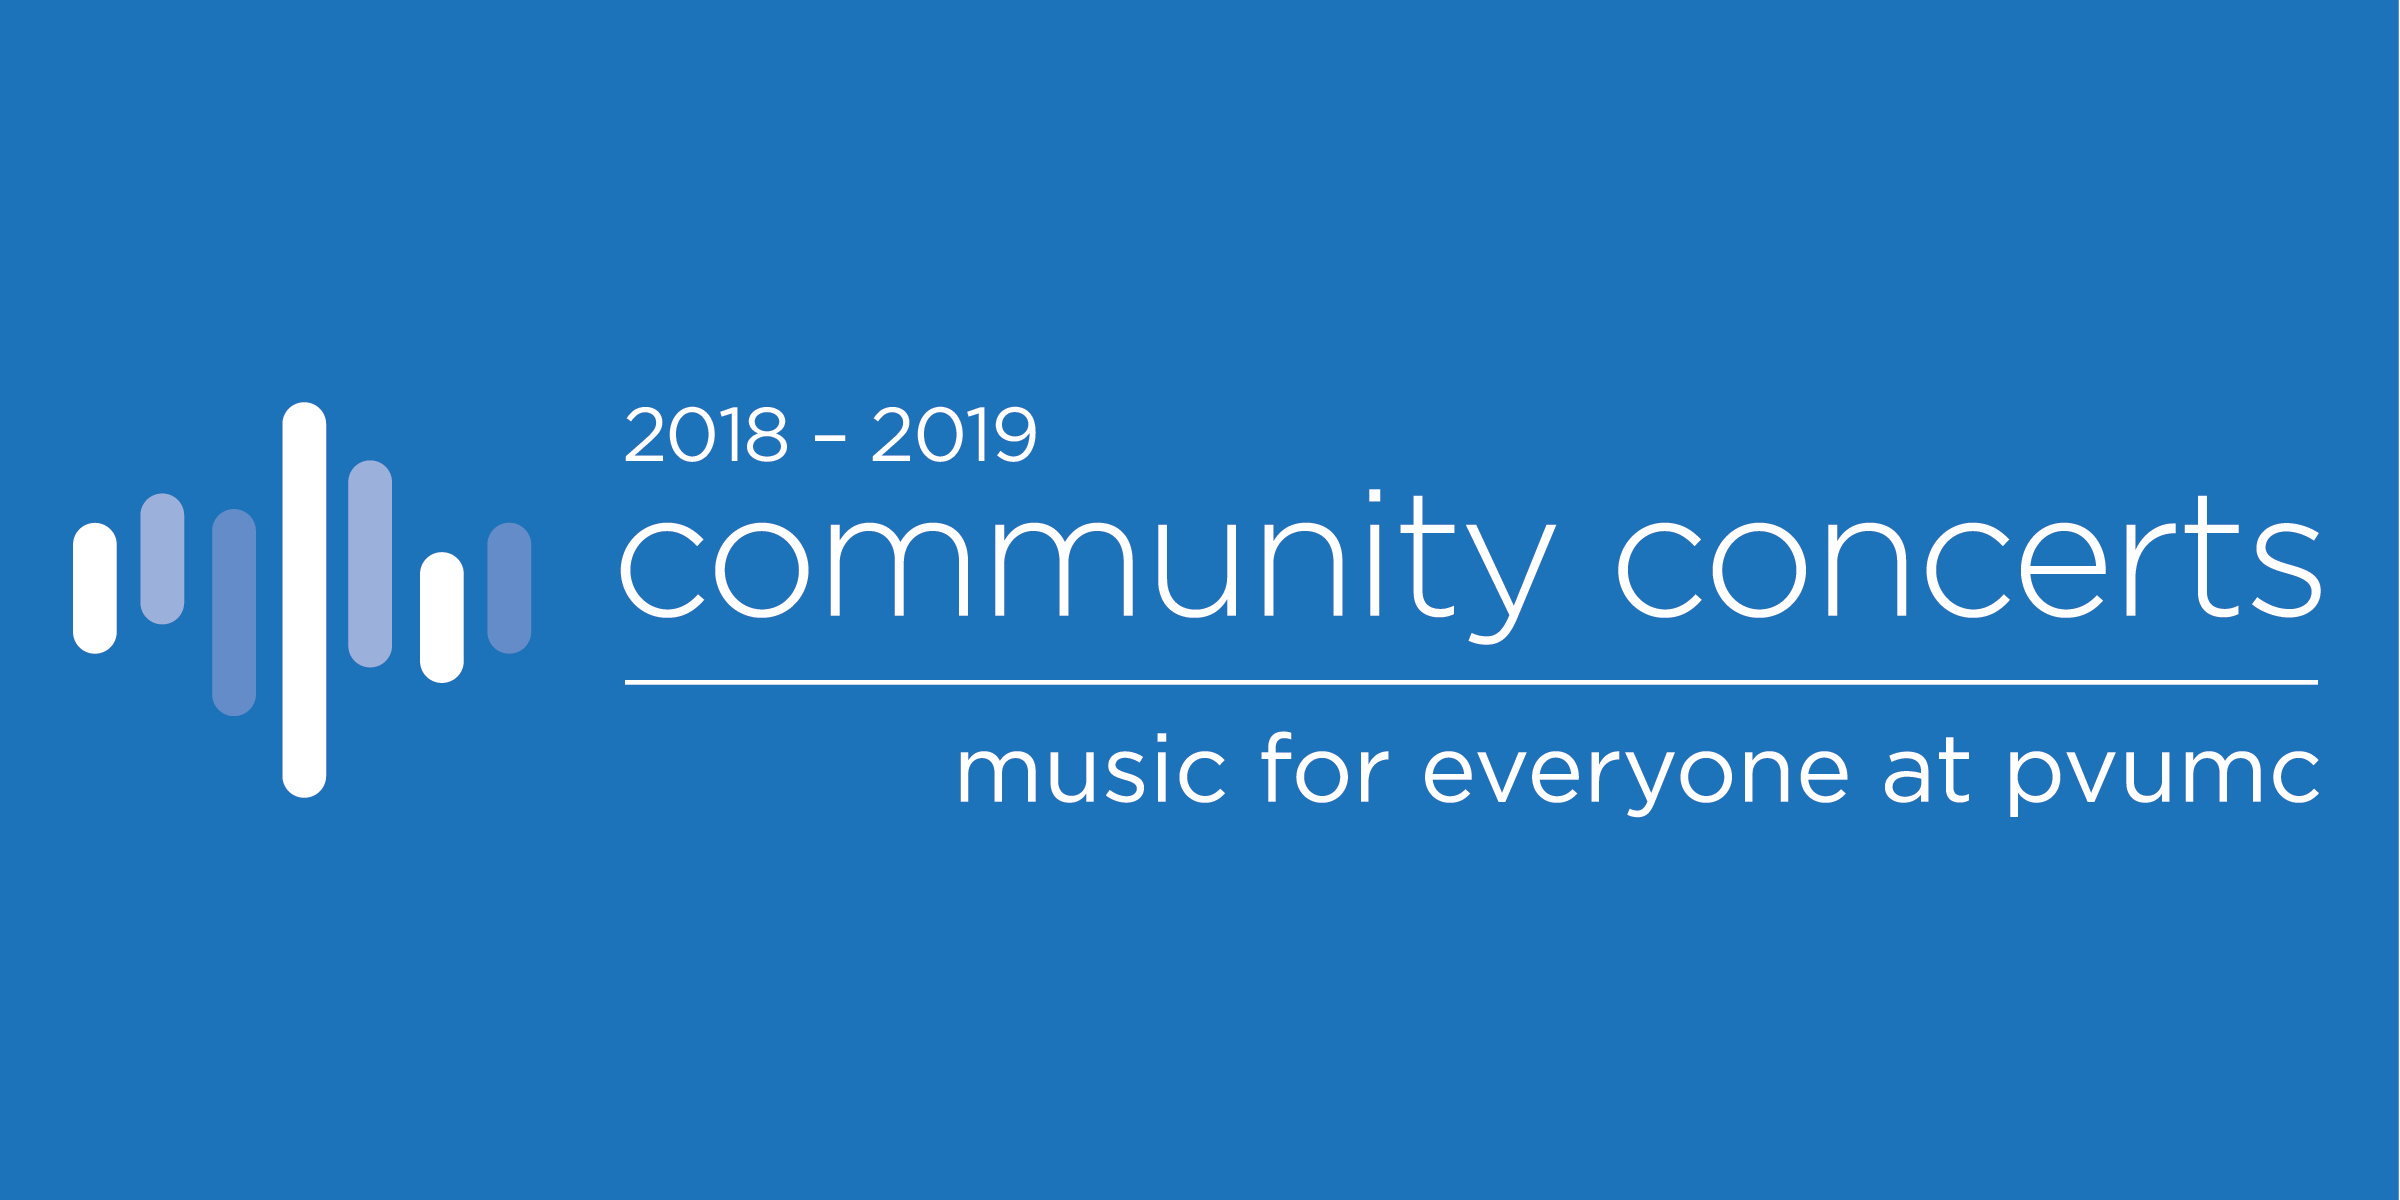 2018-2019 Community Concerts: Music for Everyone at PVUMC